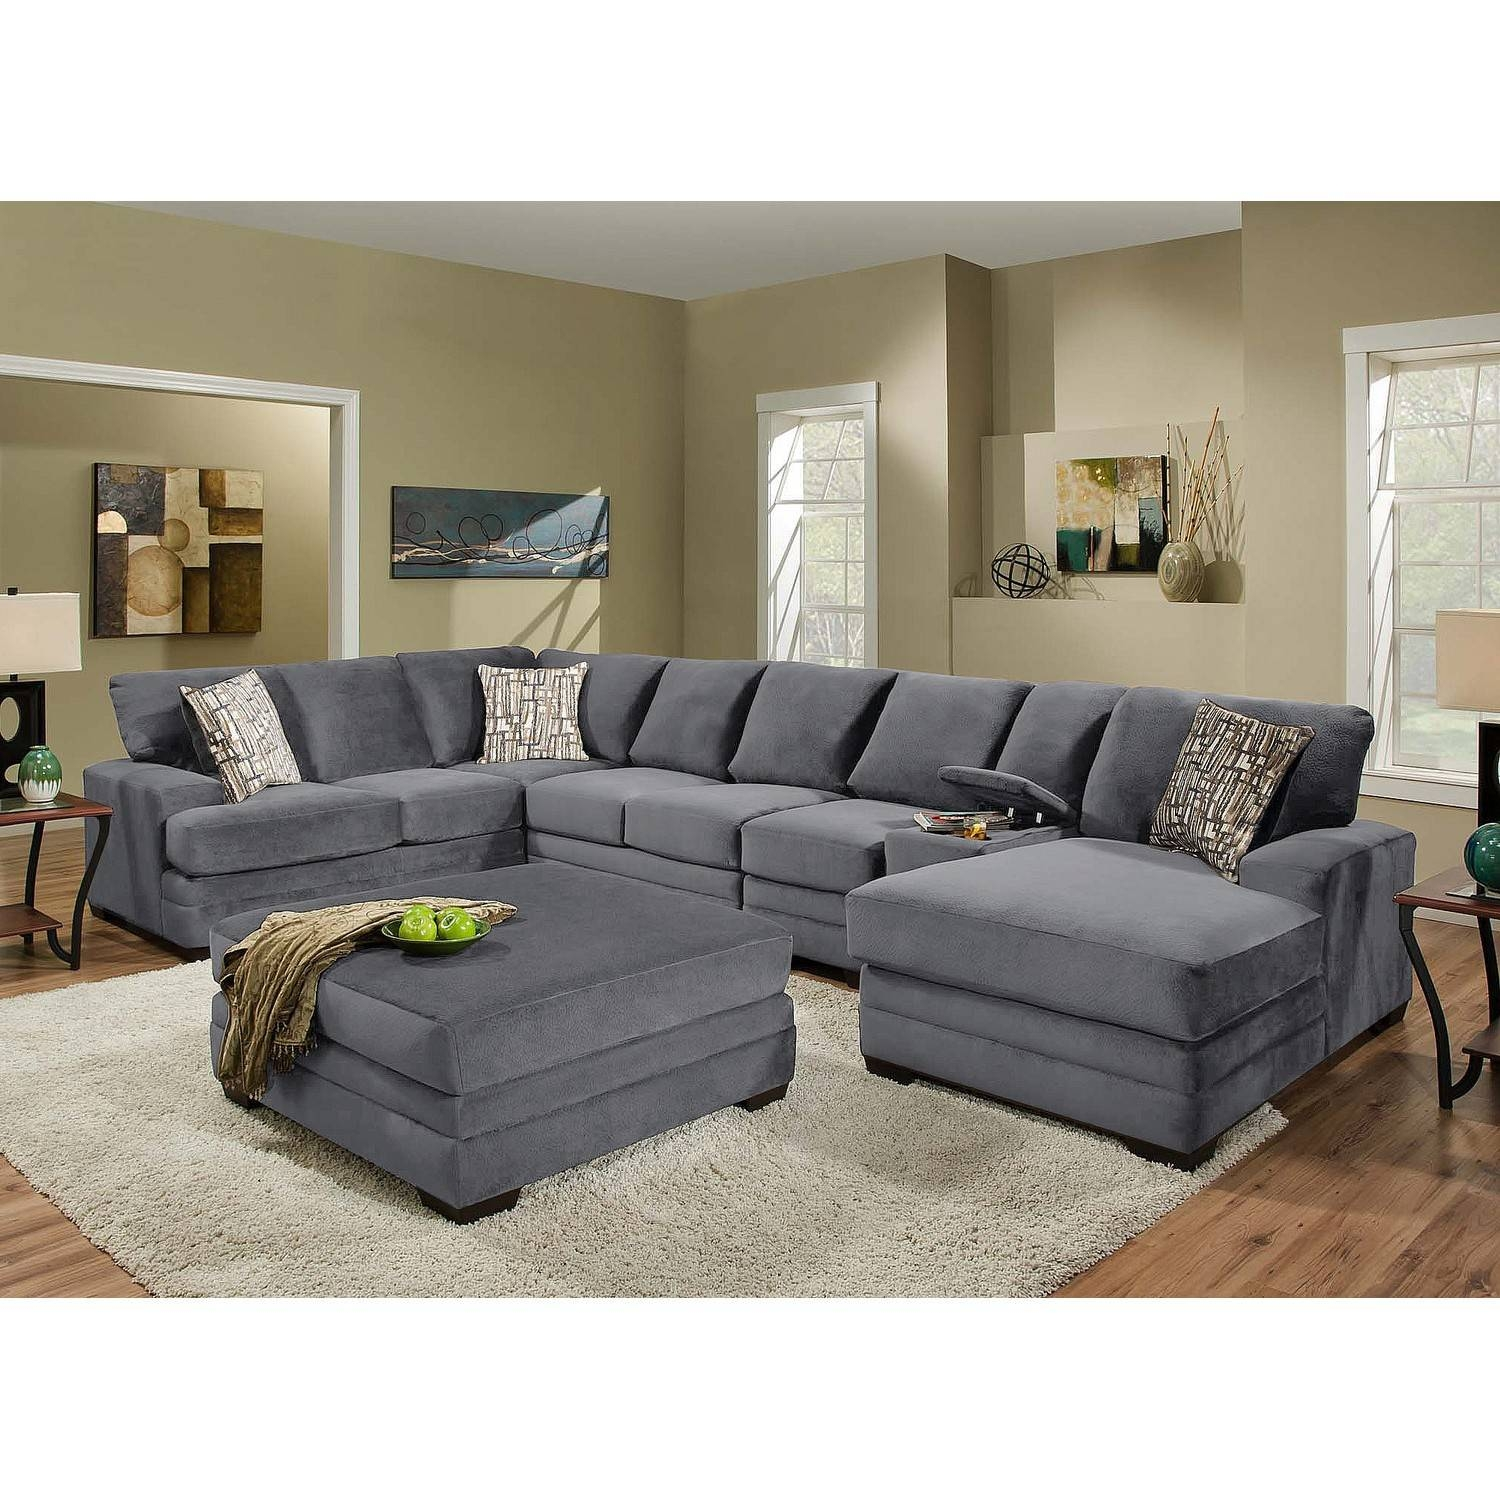 Durable Sectional Sofa - Hotelsbacau with Durable Sectional Sofa (Image 12 of 30)